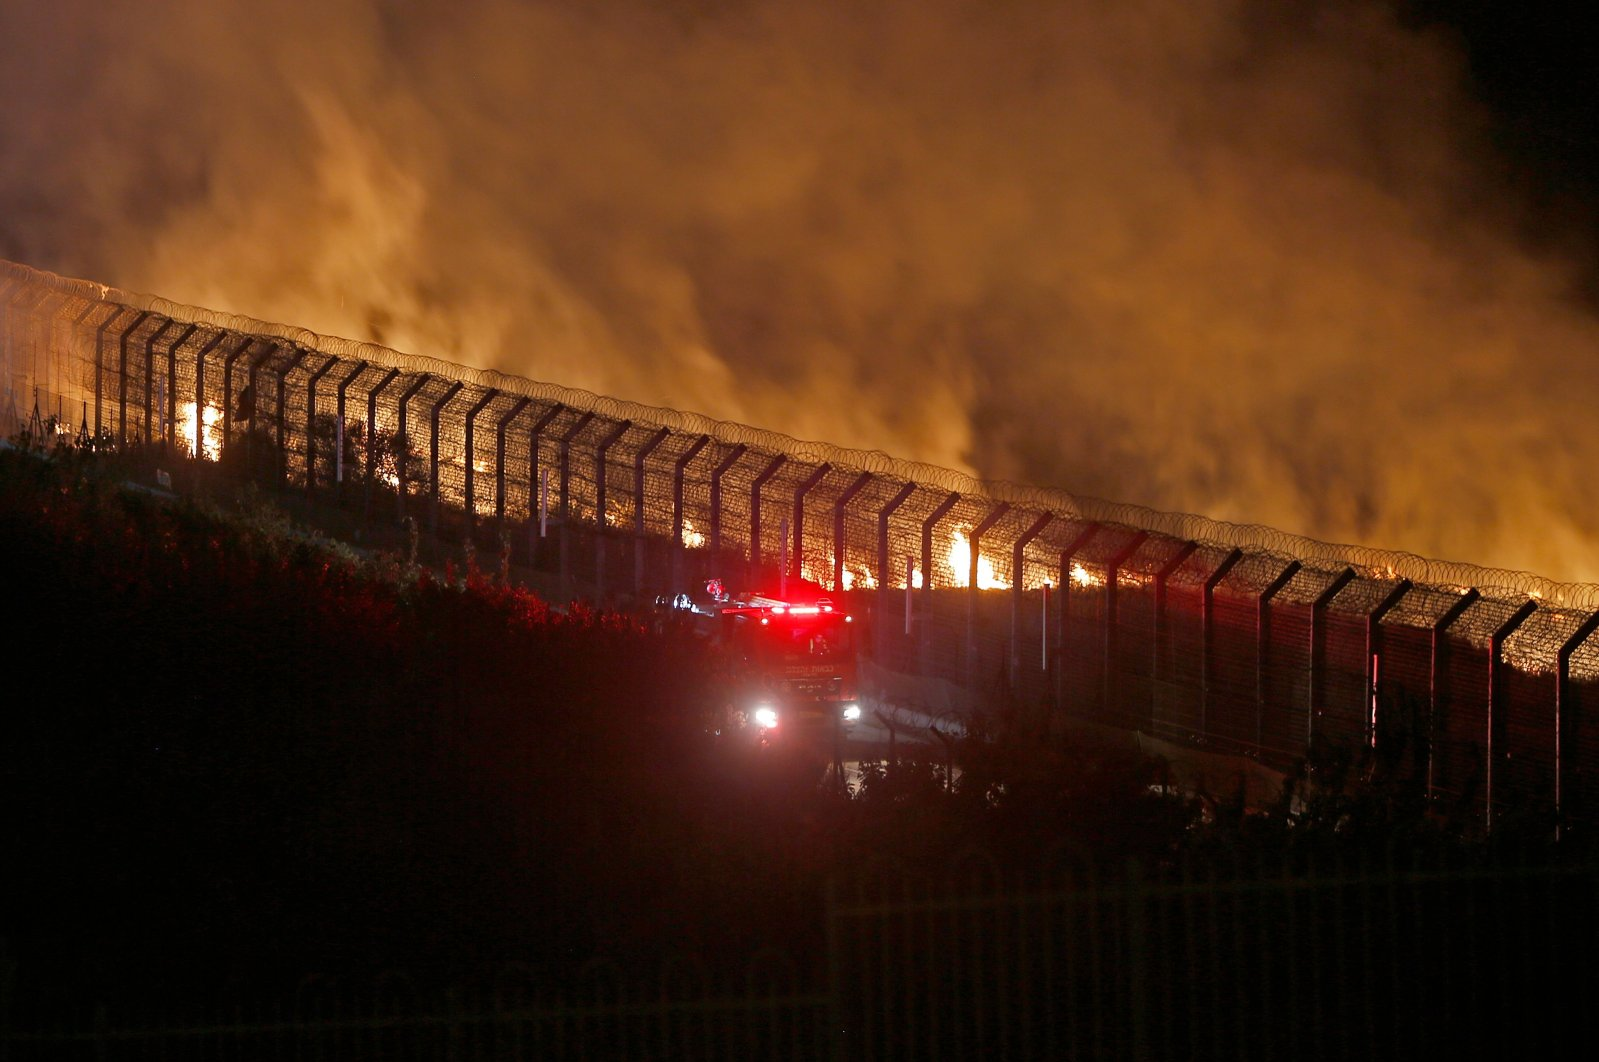 Israeli firefighters battle a blaze on the border fence with Syria, near the Druze village of Majdal Shams in the Israel-annexed Golan Heights, Aug. 31, 2020. (AFP Photo)